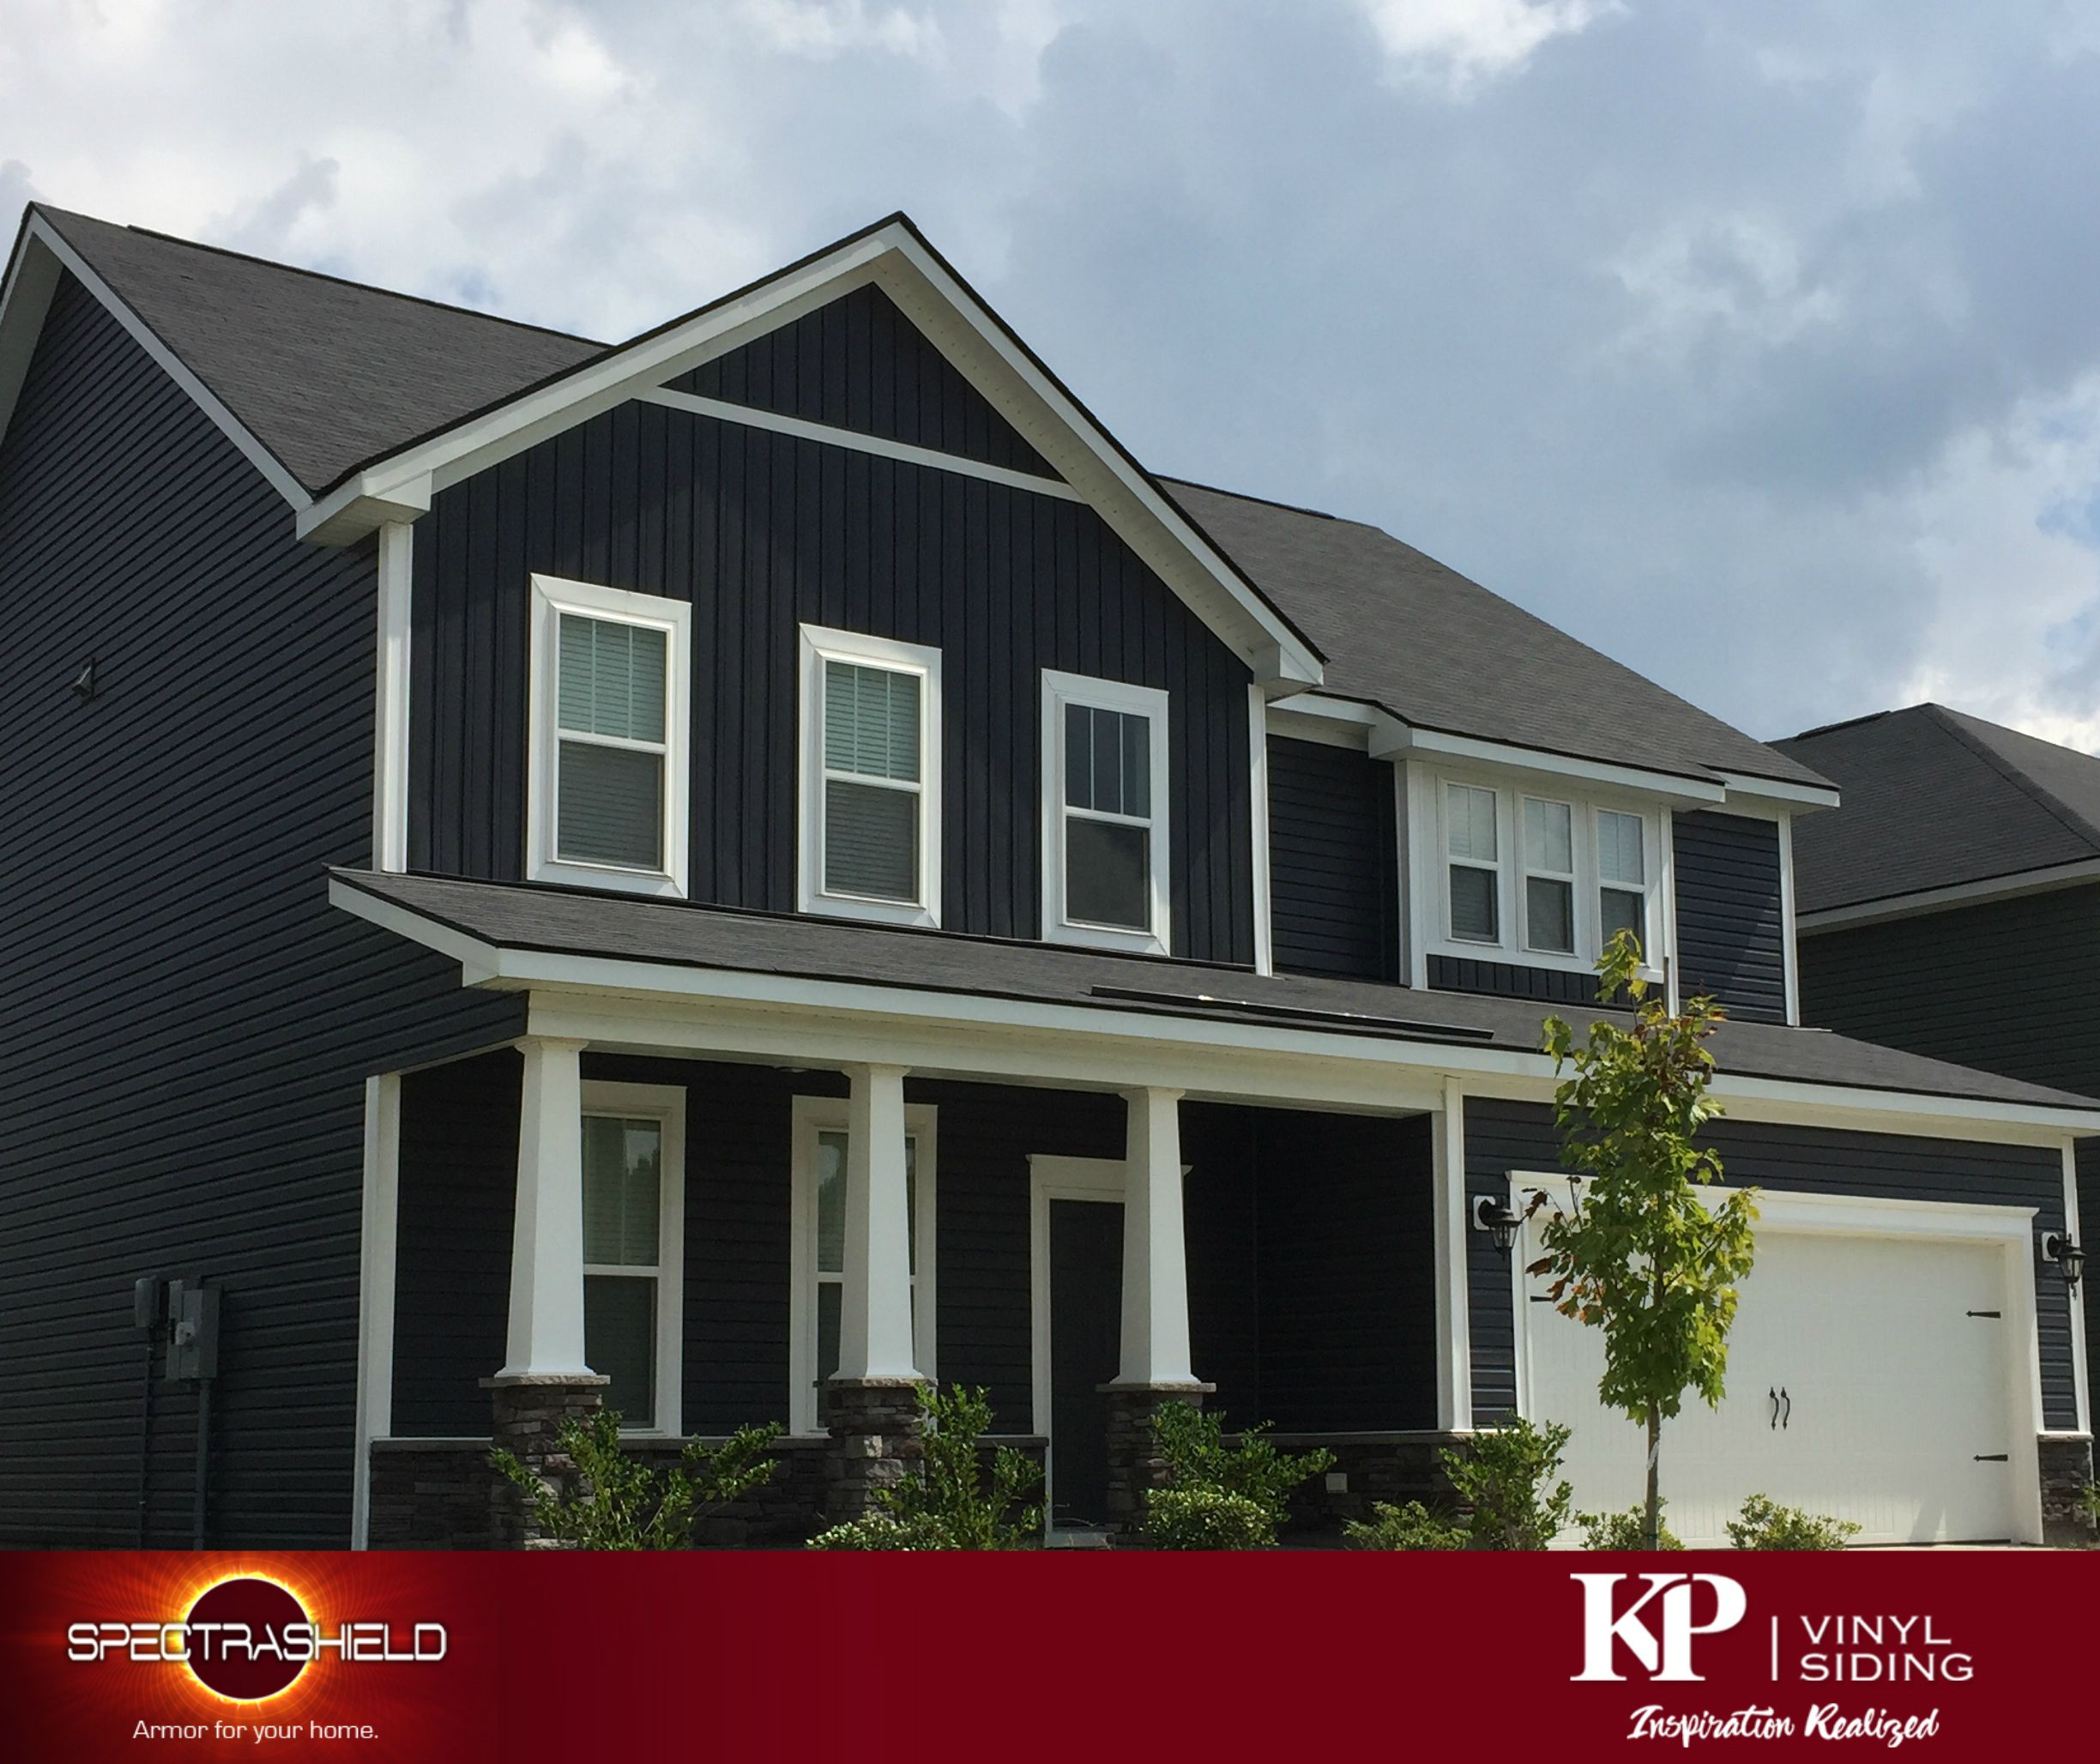 Manor A Bold Dark Color Vinyl Siding From Kp Vinyl